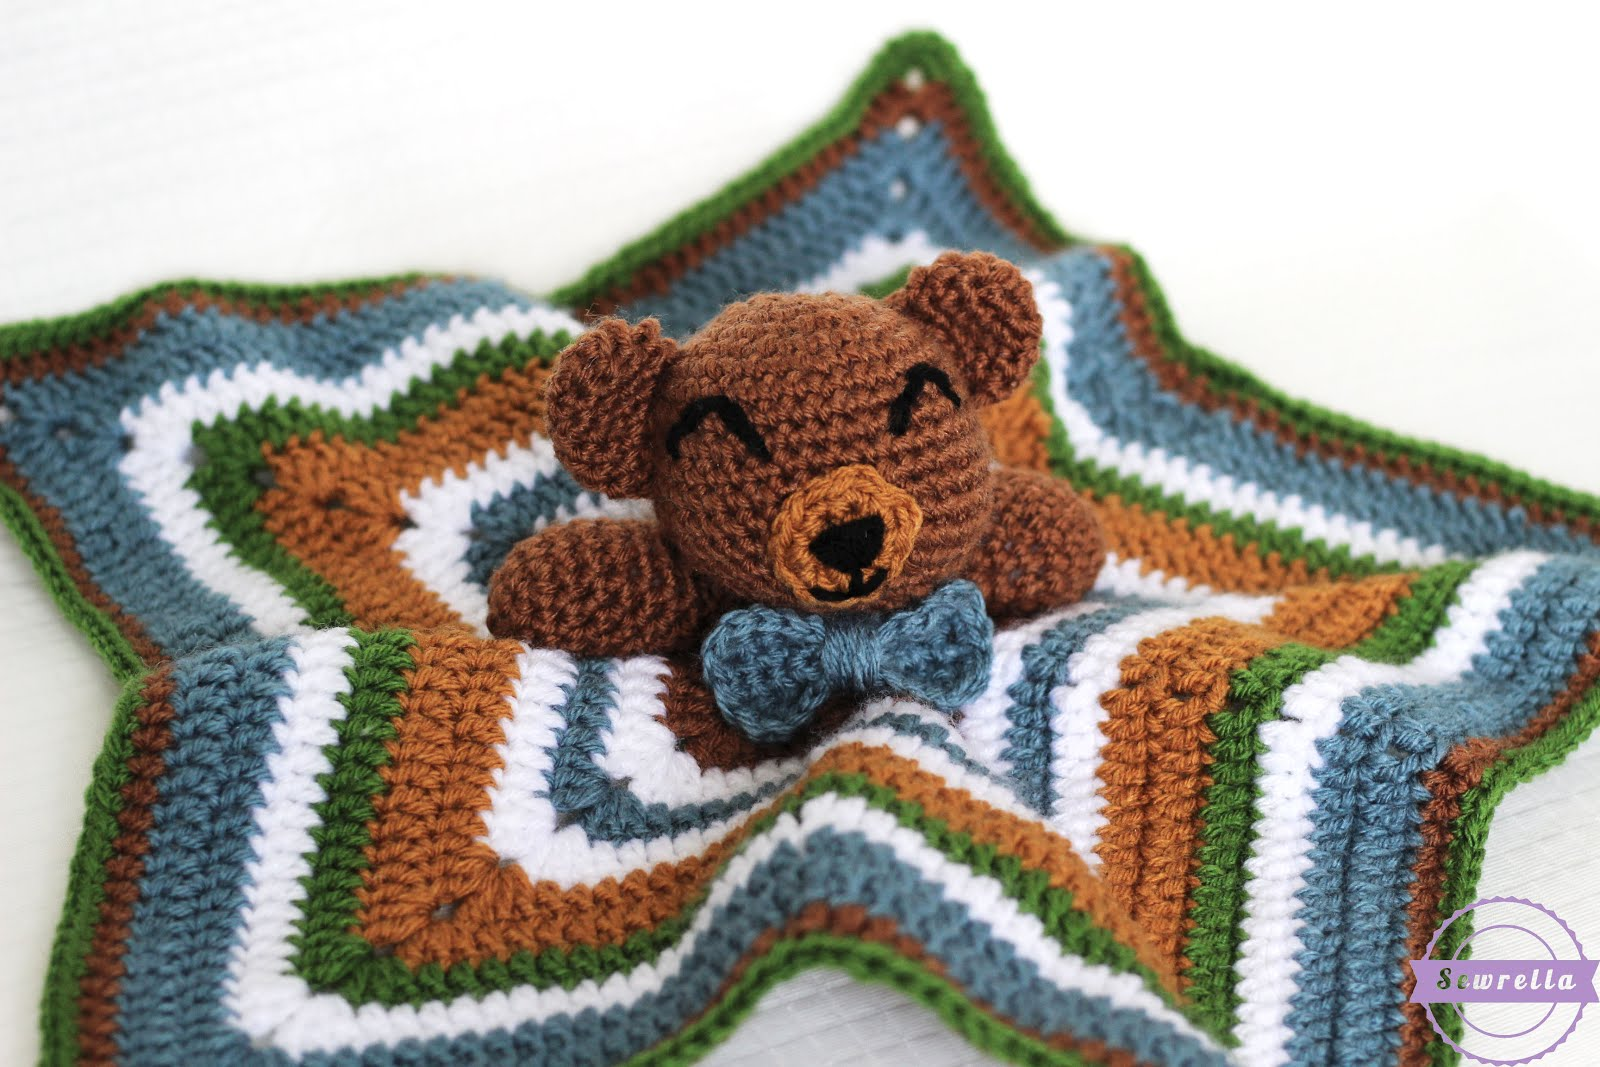 The Cuddliest Crochet Bear Lovey Sewrella